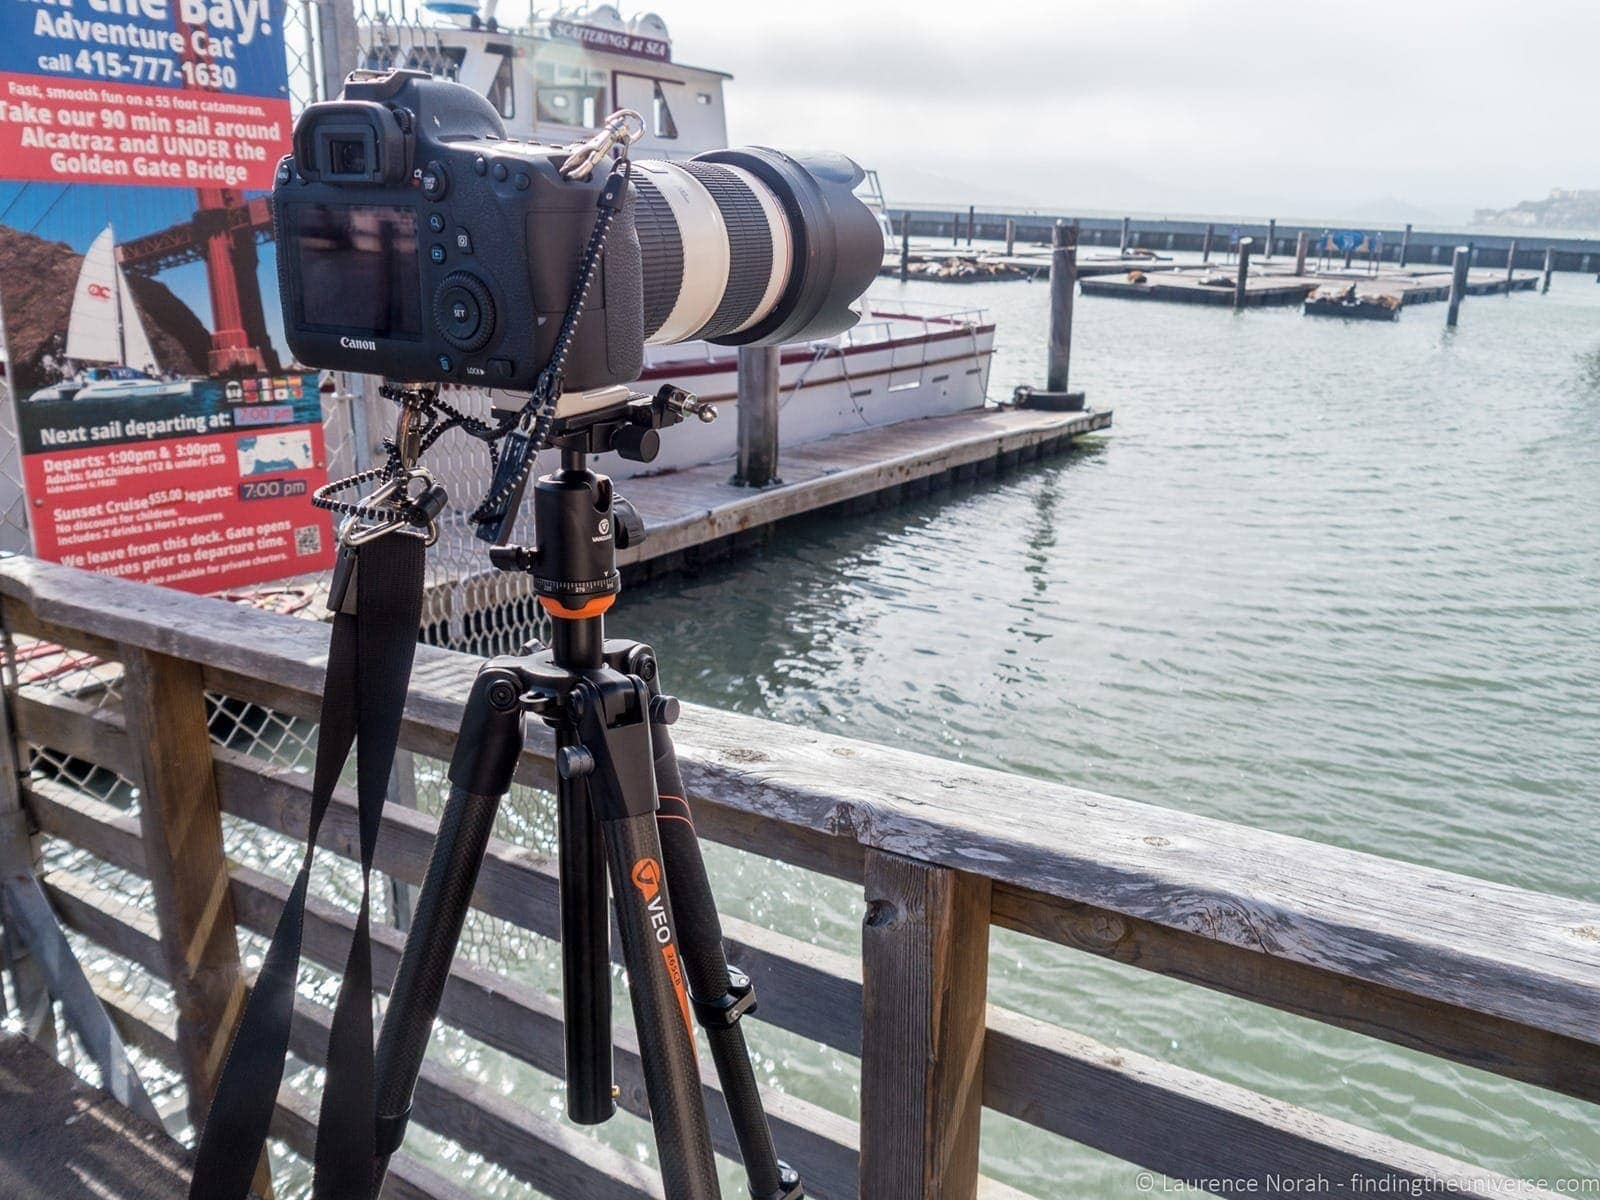 Photographing tourists pier 39 San Francisco